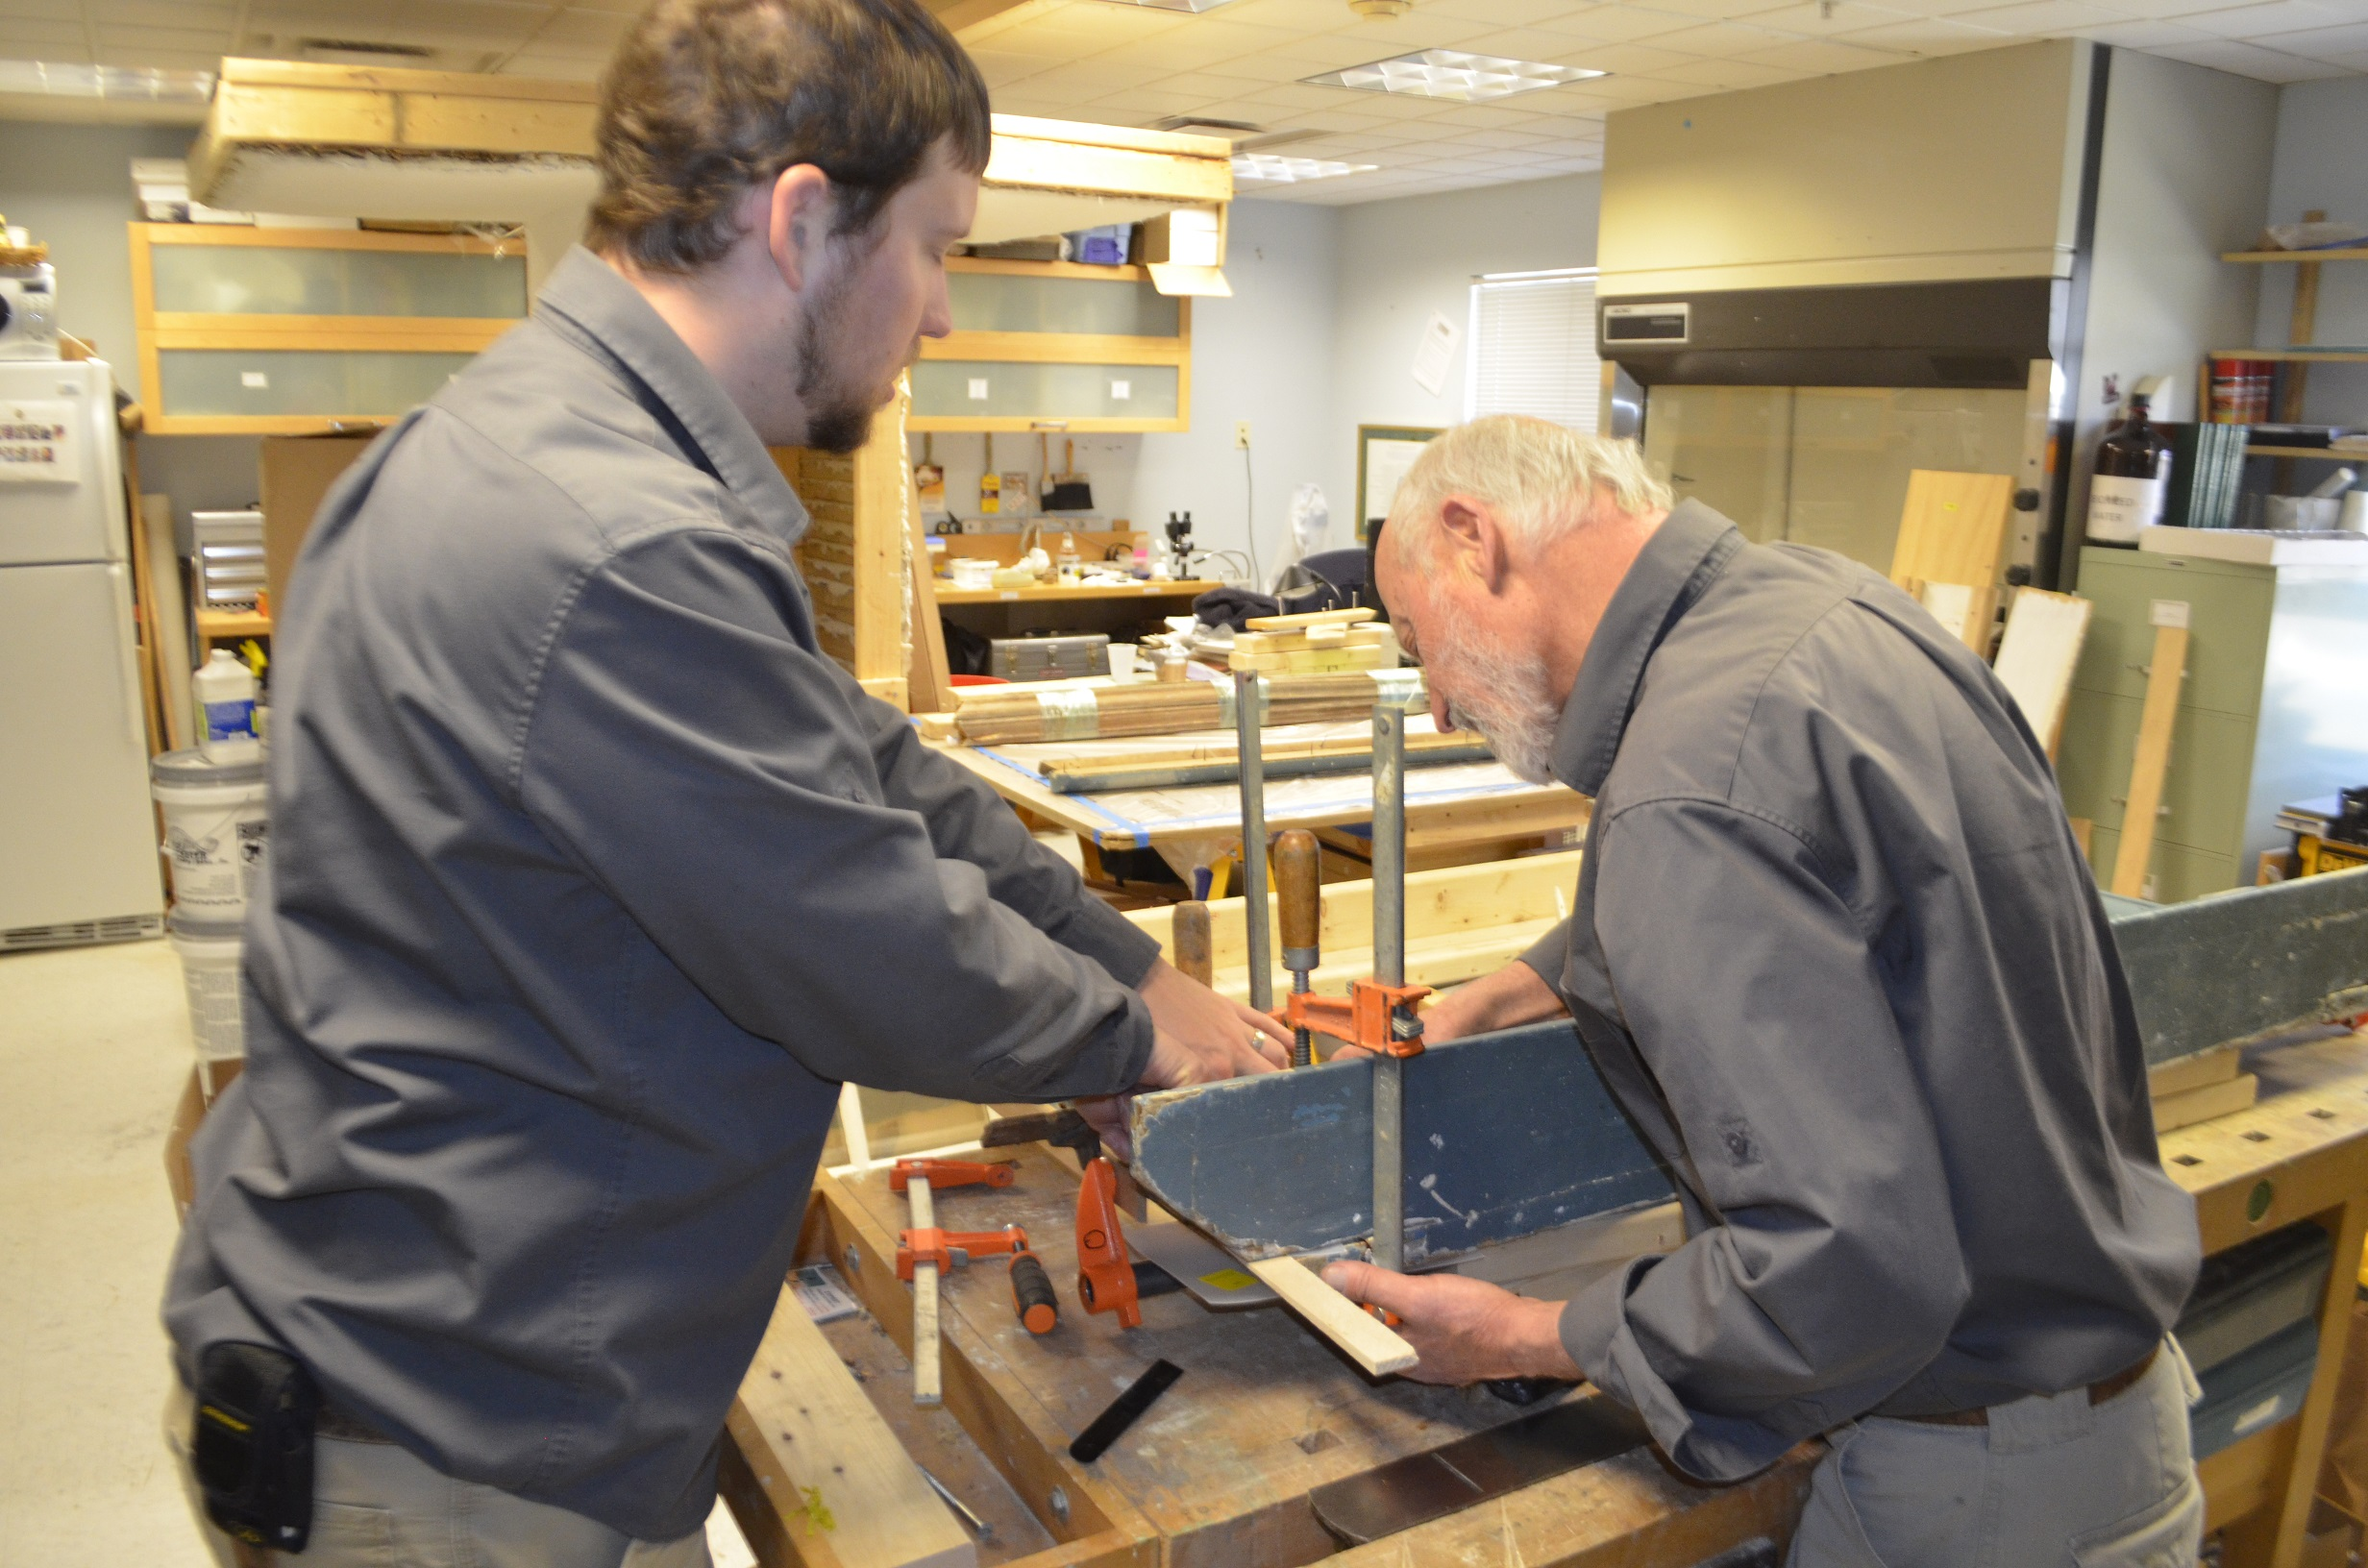 Architectural Conservator, Steve Stuckey, and Head Preservation Carpenter, John O'Rourke, executing mantel repairs.